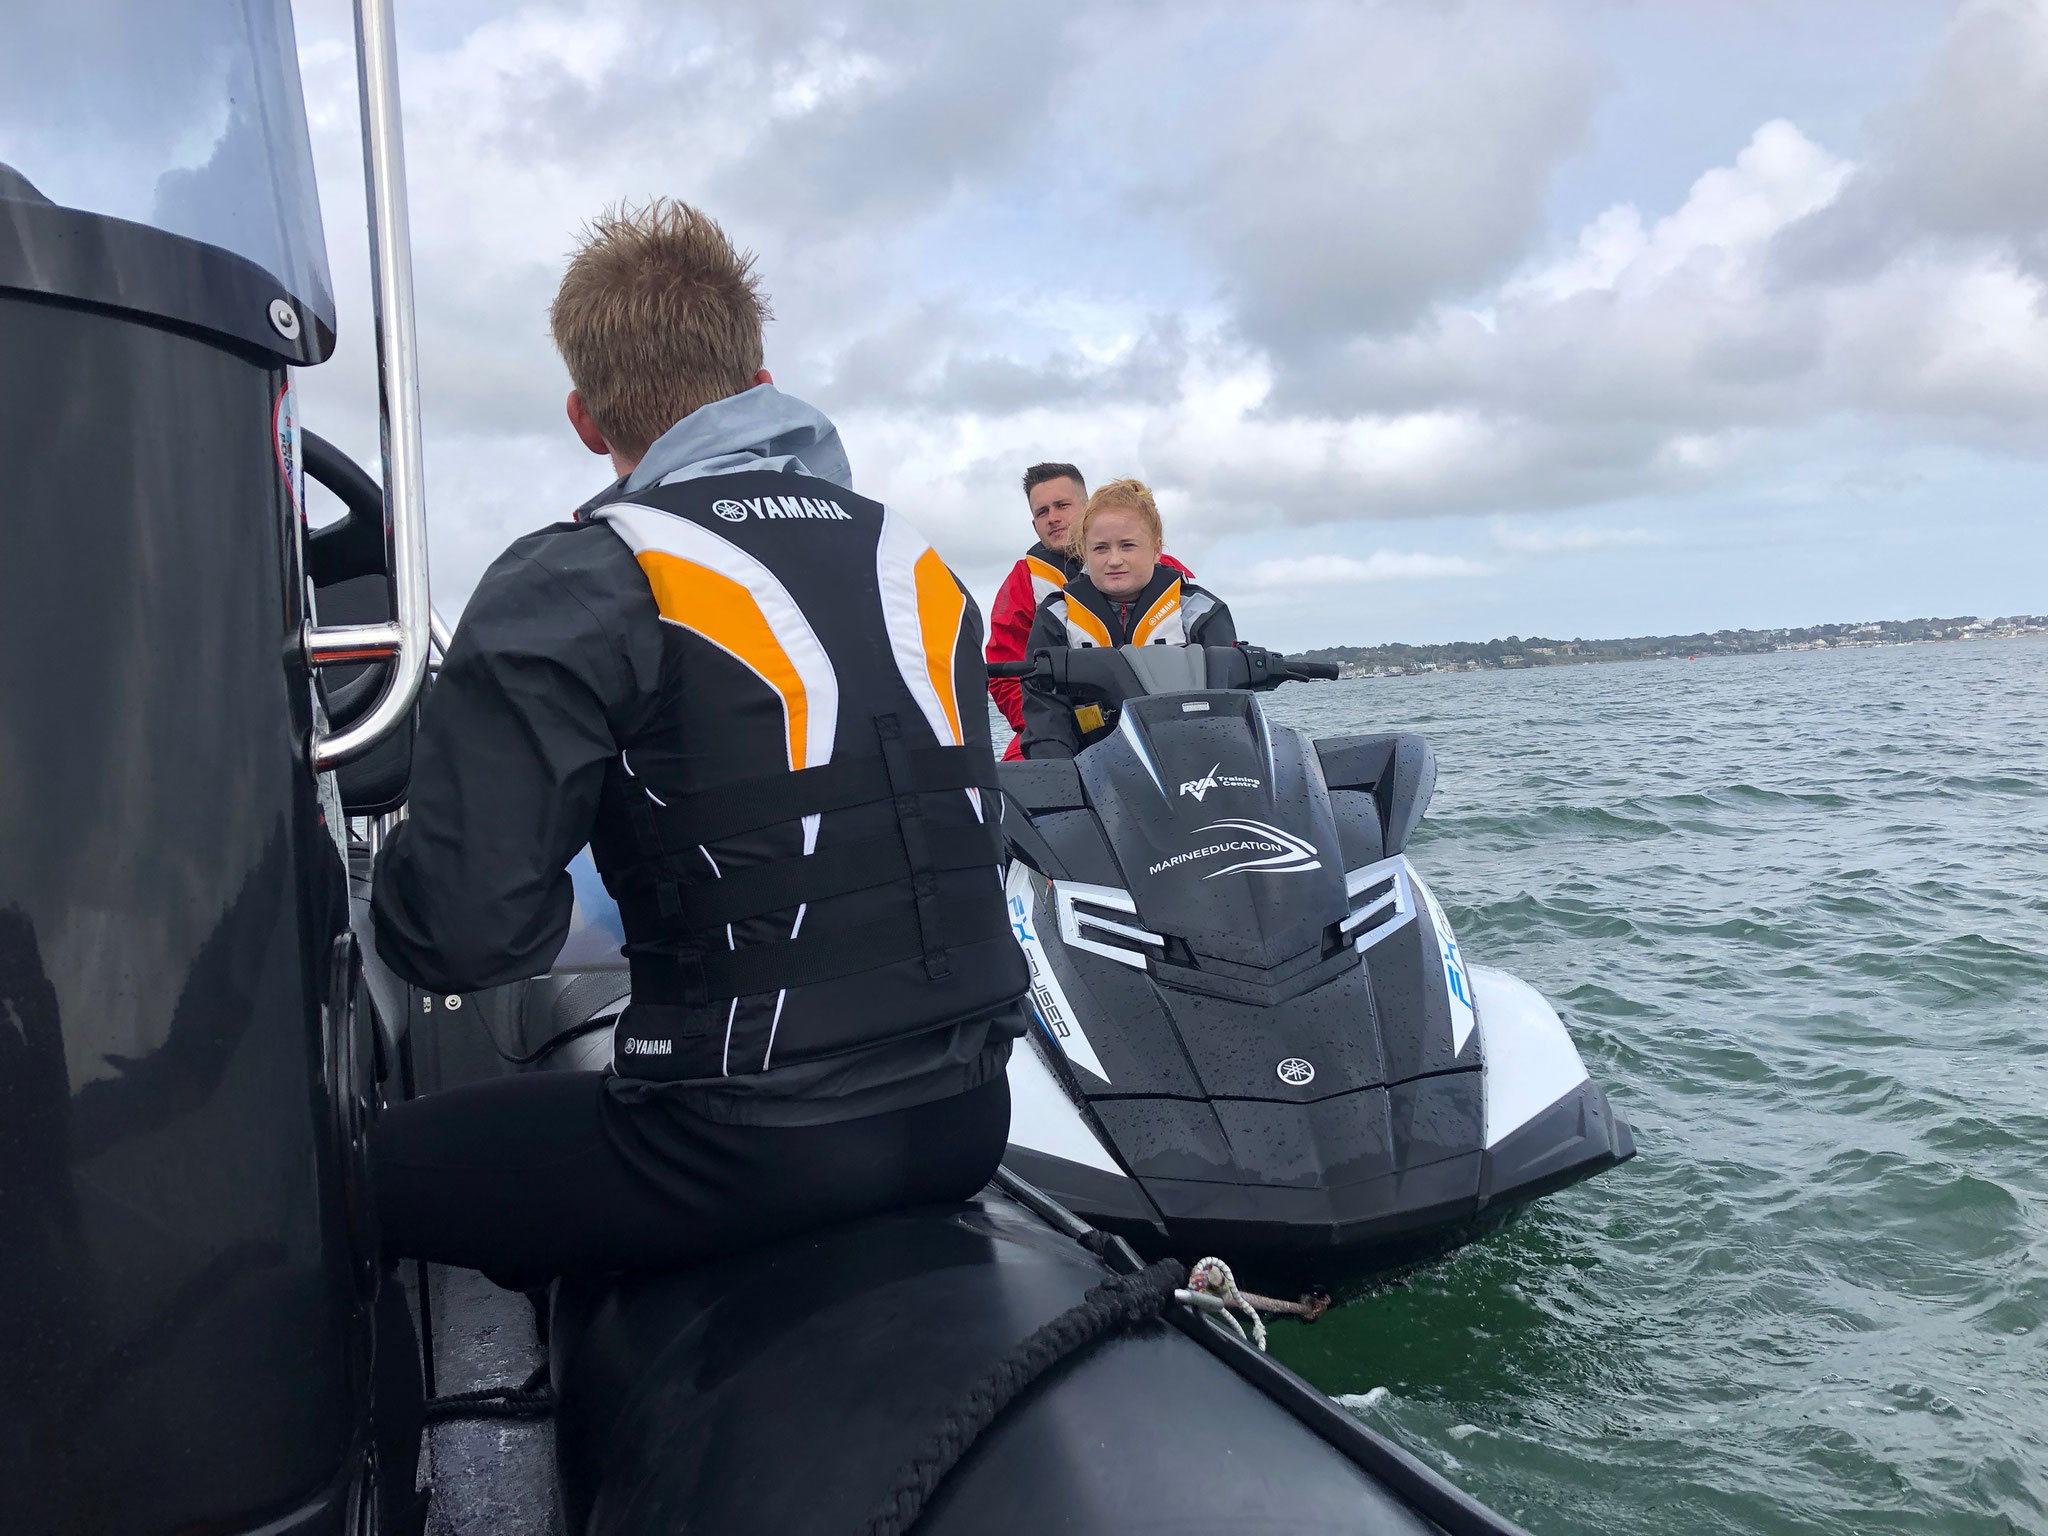 RYA Jetski (PWC) Instructor Conversion Course, Poole